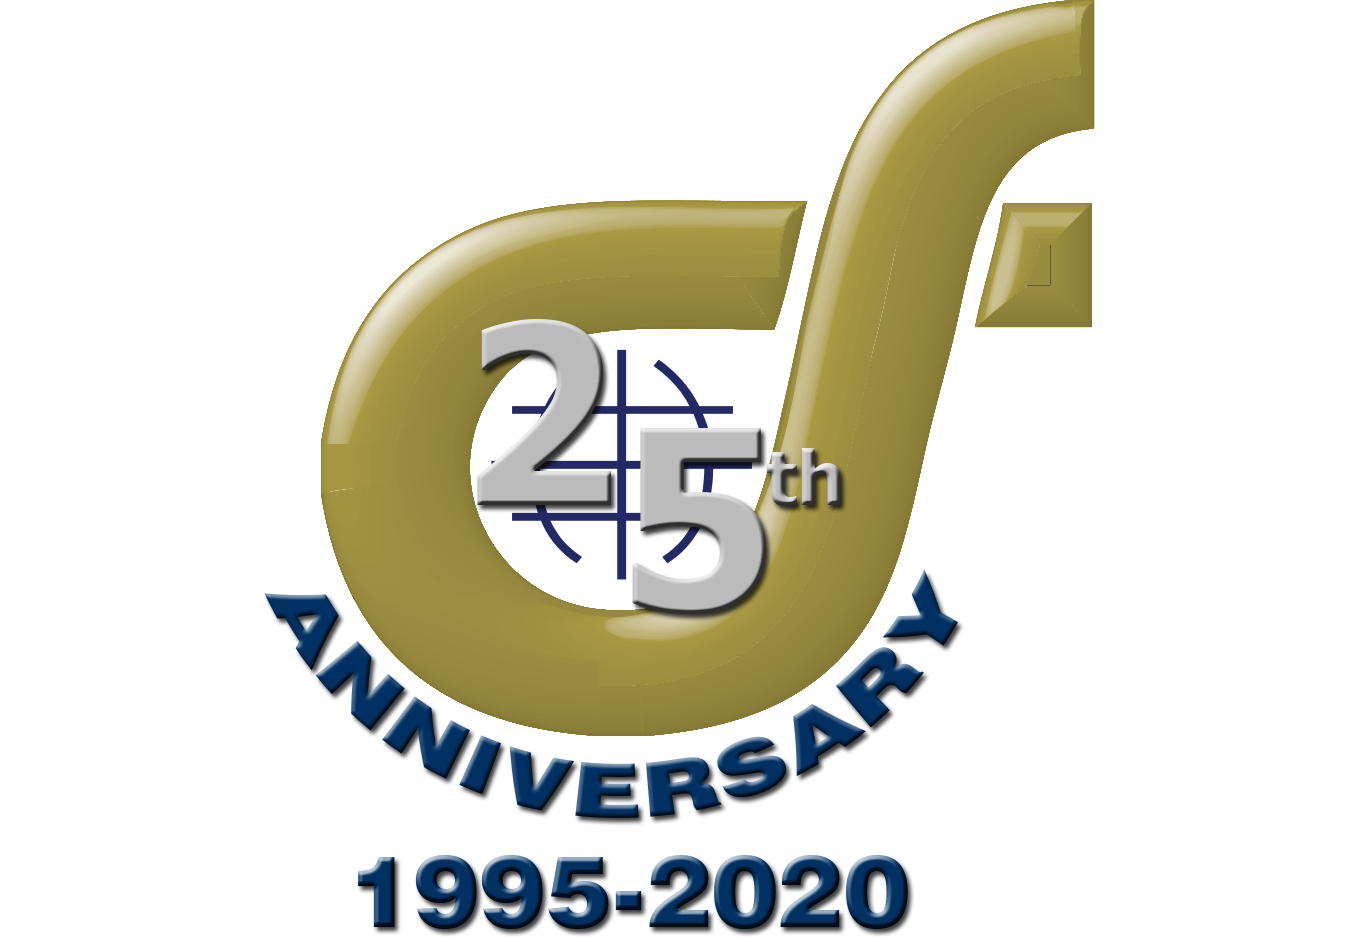 CANFIN 25th Anniversary